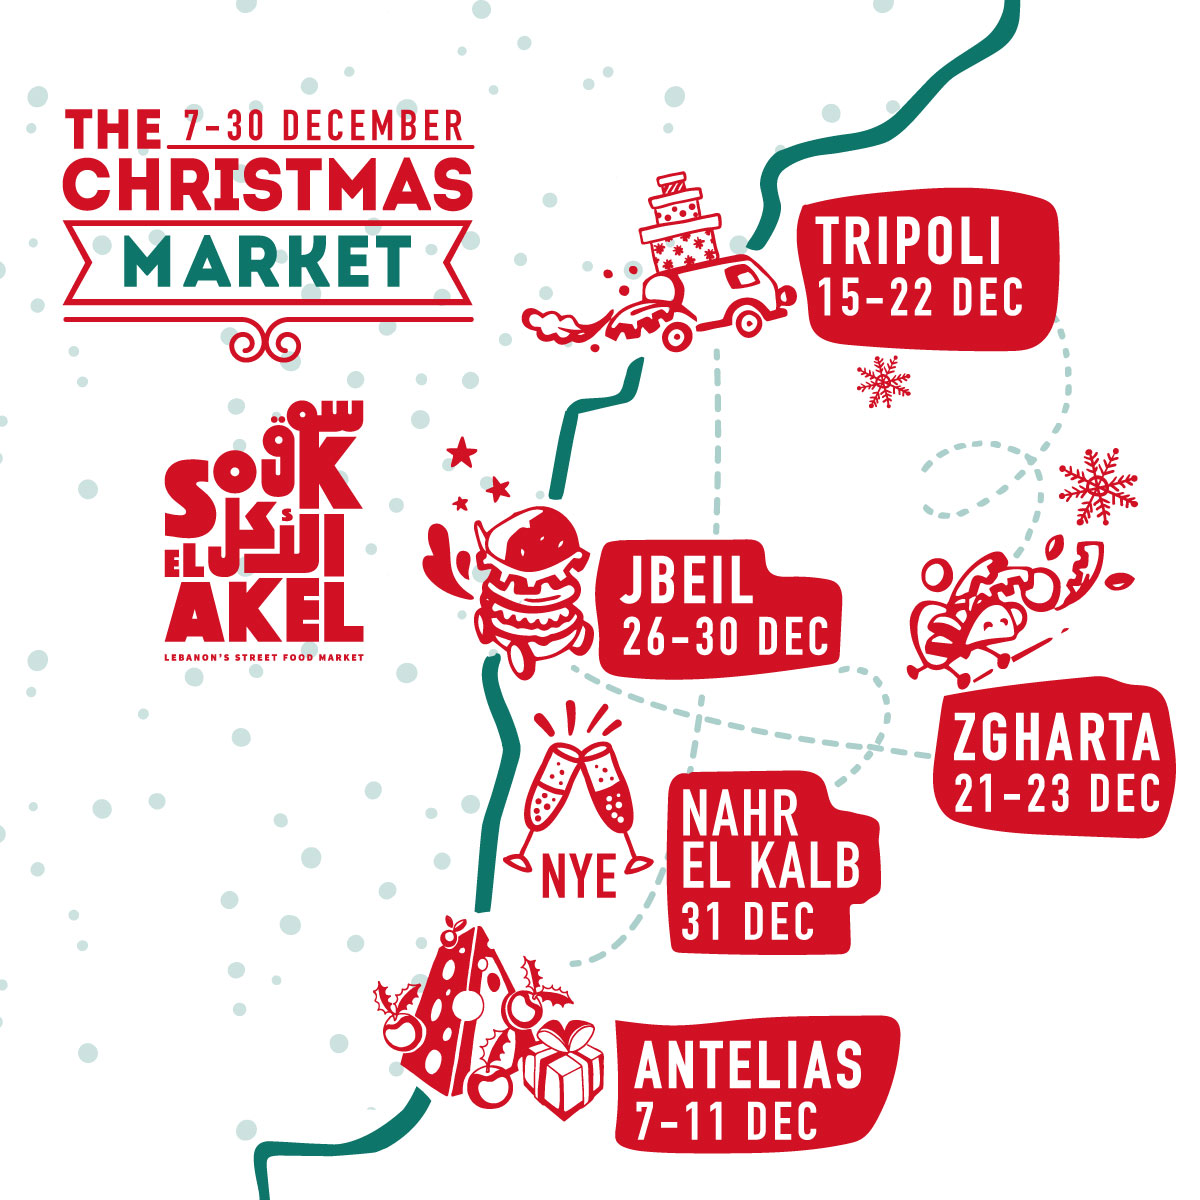 illustration-souk-el-akel-map-christmas